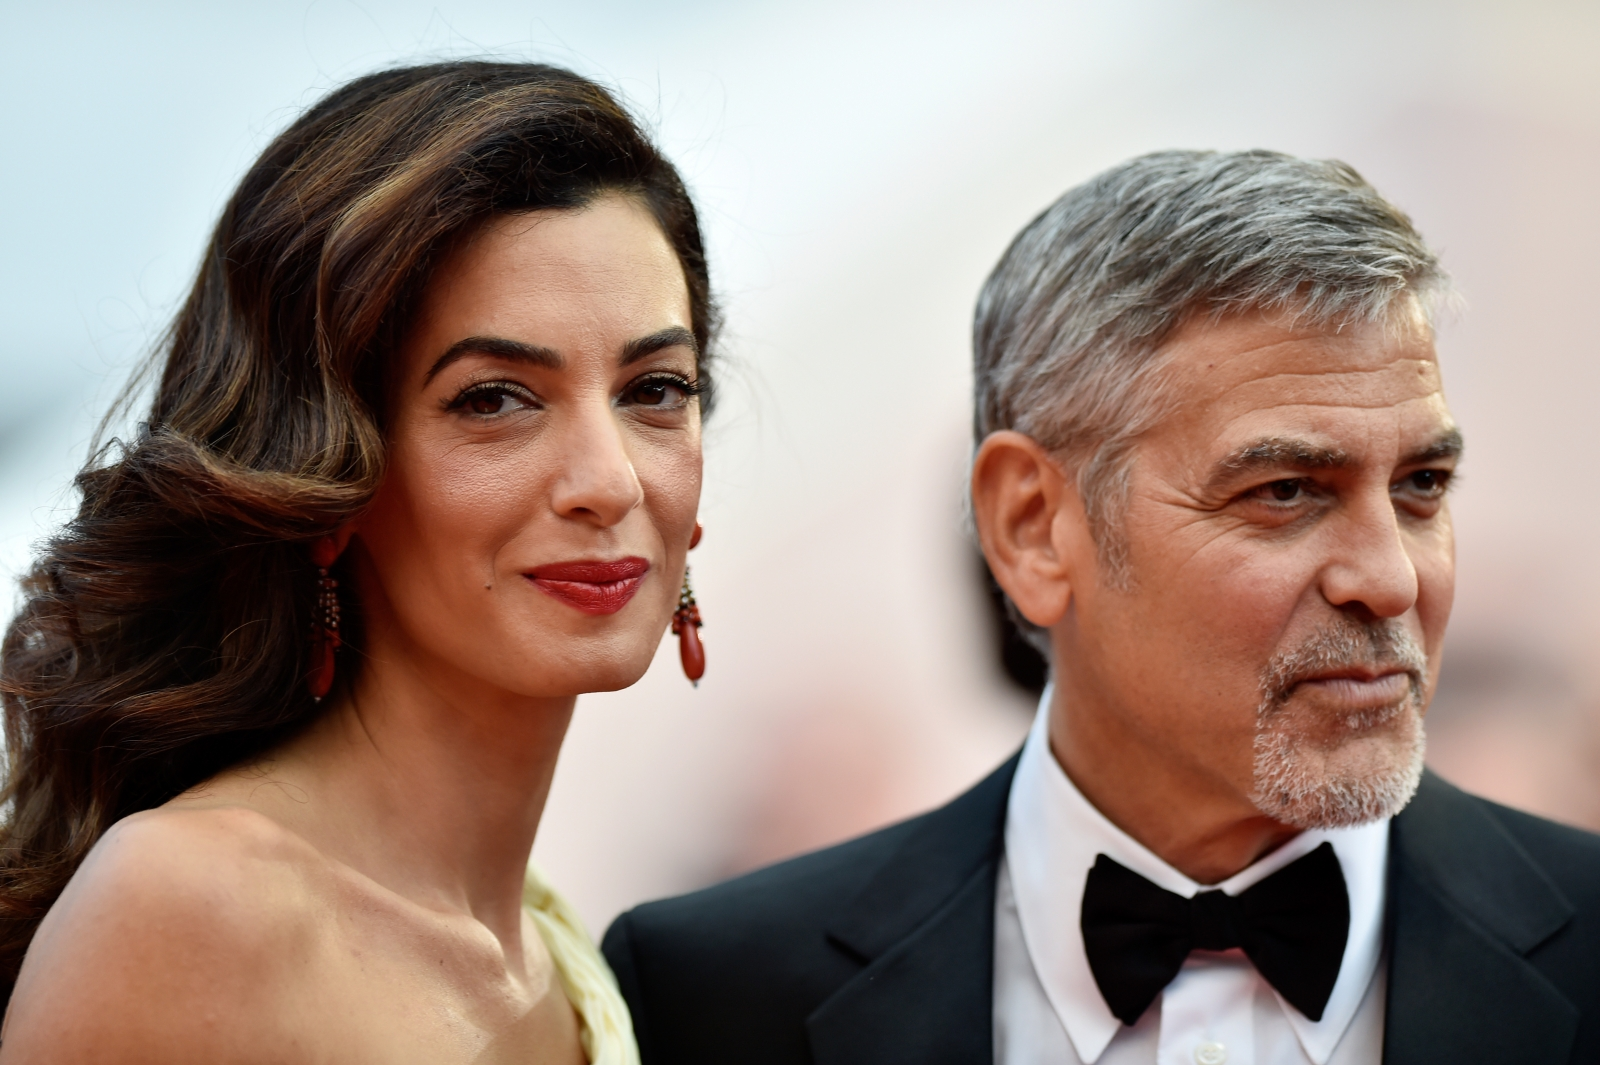 Nollywood Xnollytv Blogspot: George And Amal Clooney